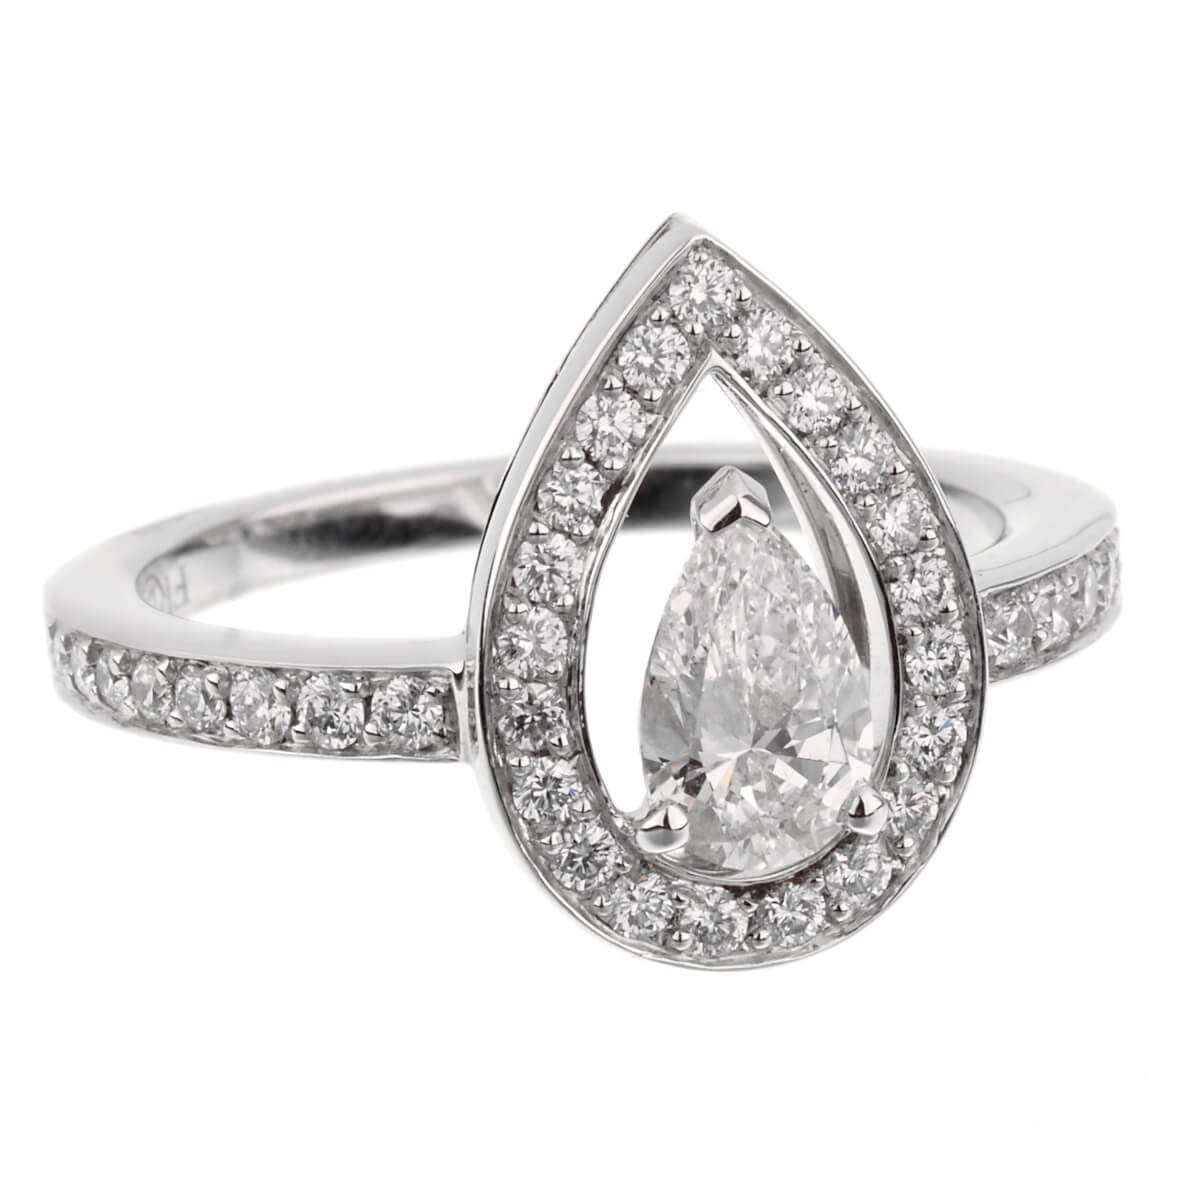 Fred of Paris Lovelight Pear Shaped .67ct Diamond Engagement Ring